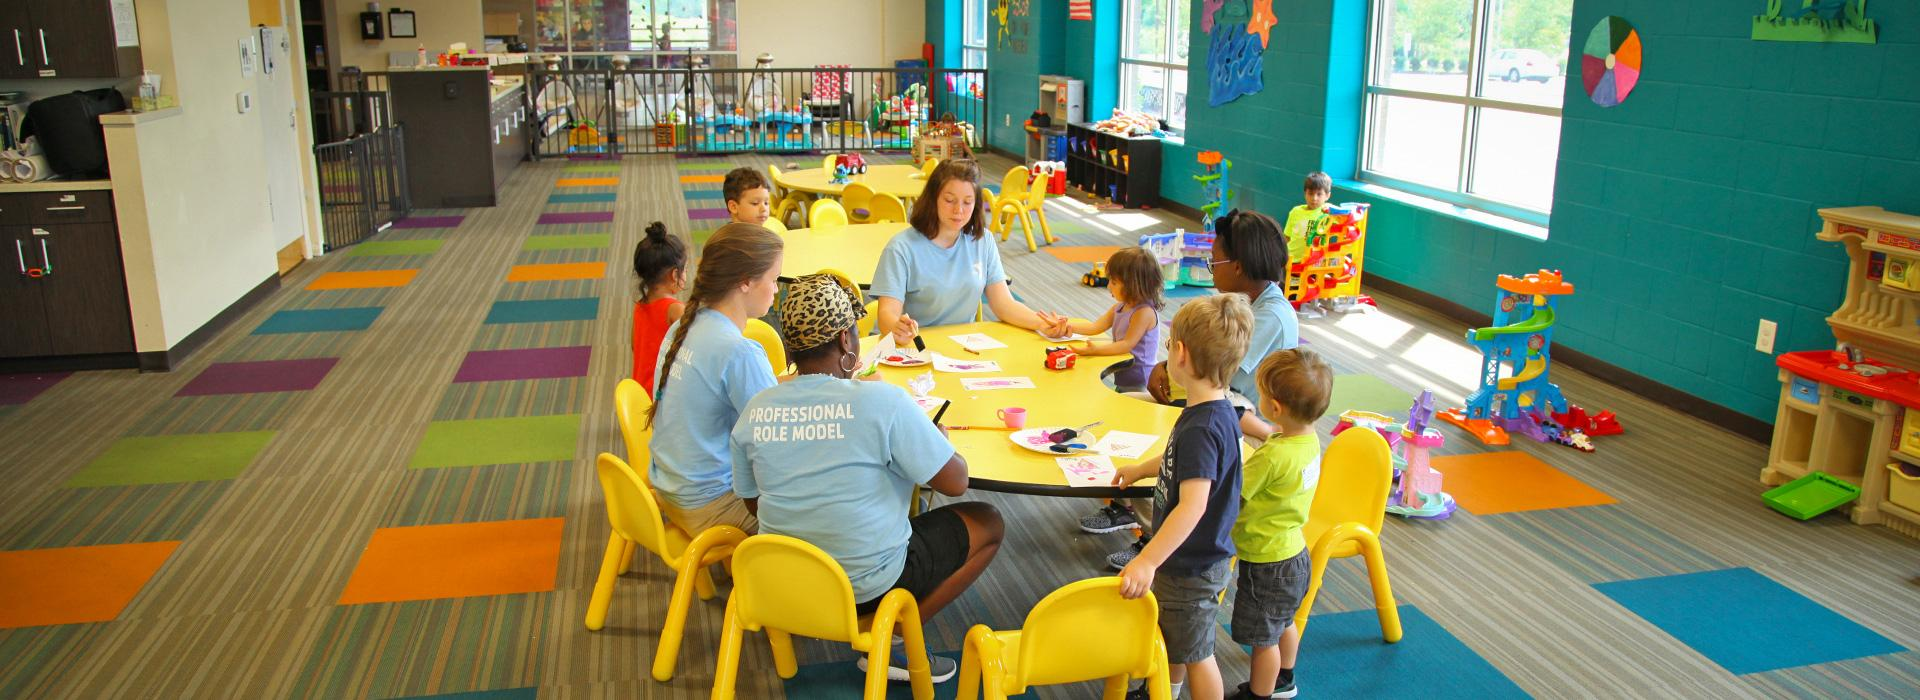 Princess Anne Family YMCA child care